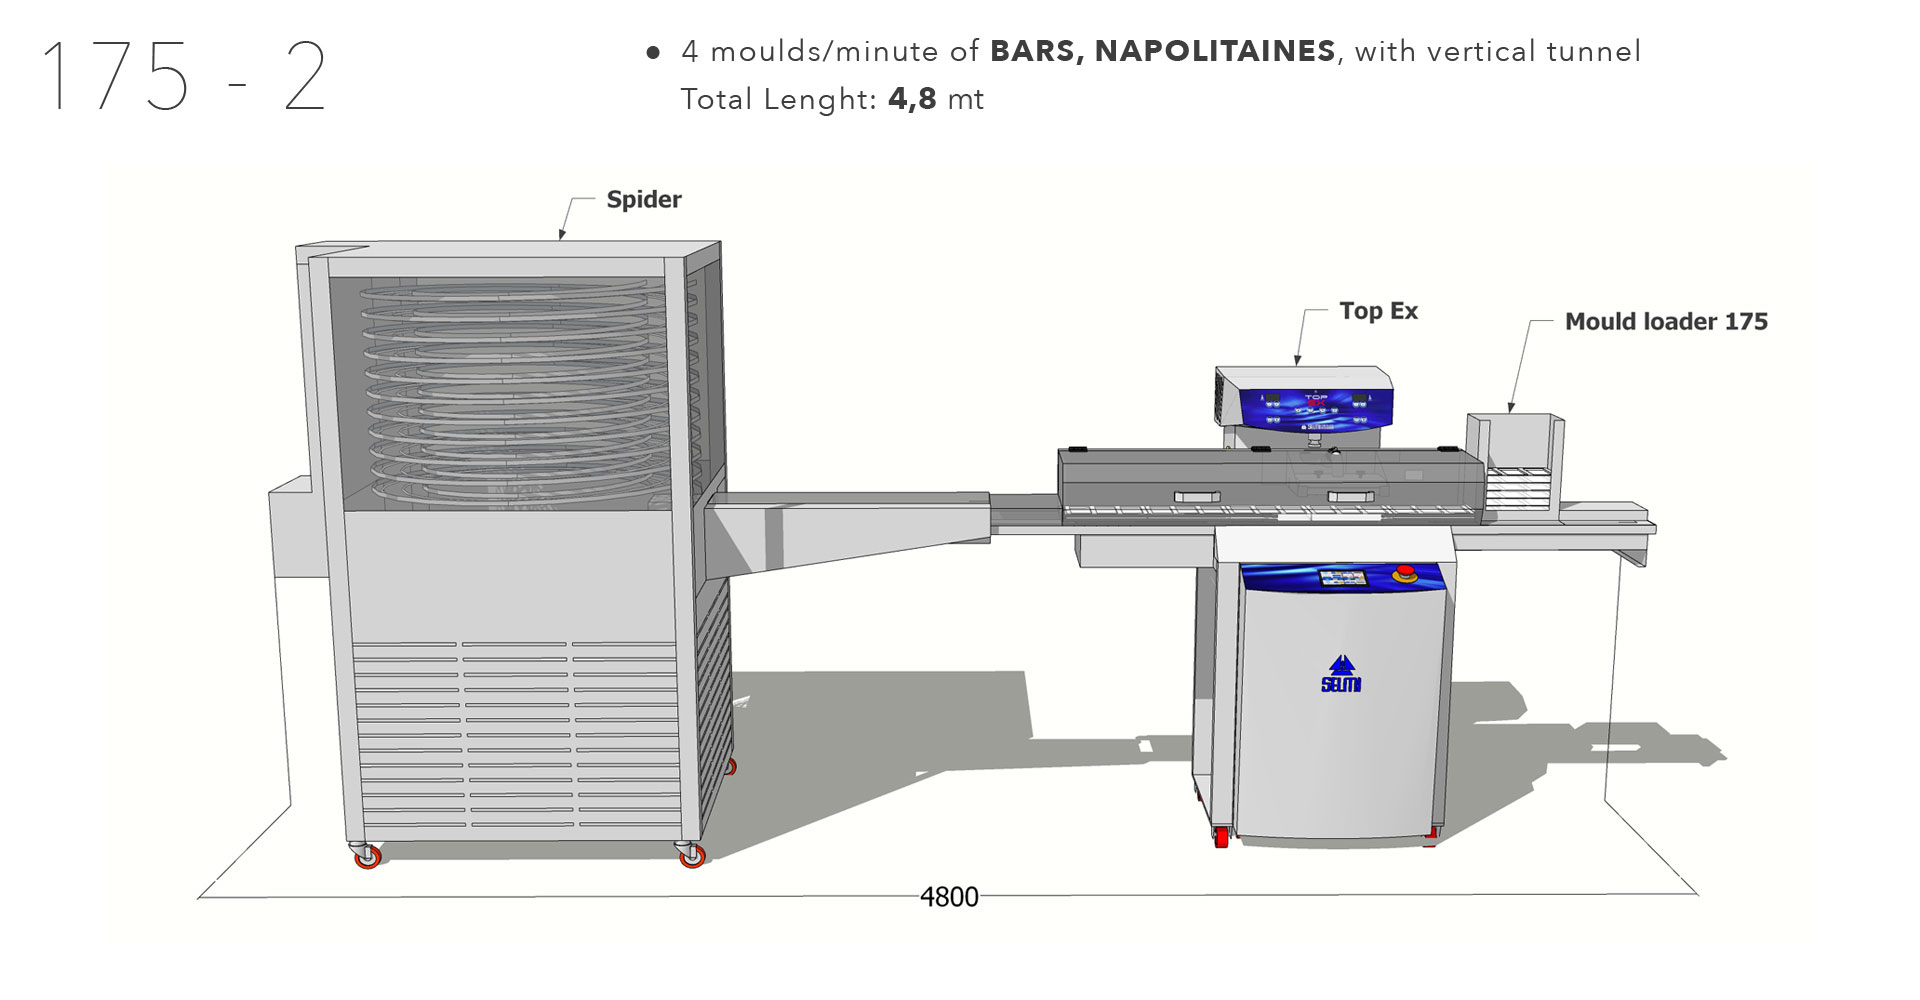 Mould Loader 175. 4,8 mt configuration for 4 moulds/min of bars, napolitaines, with Spider vertical tunnel